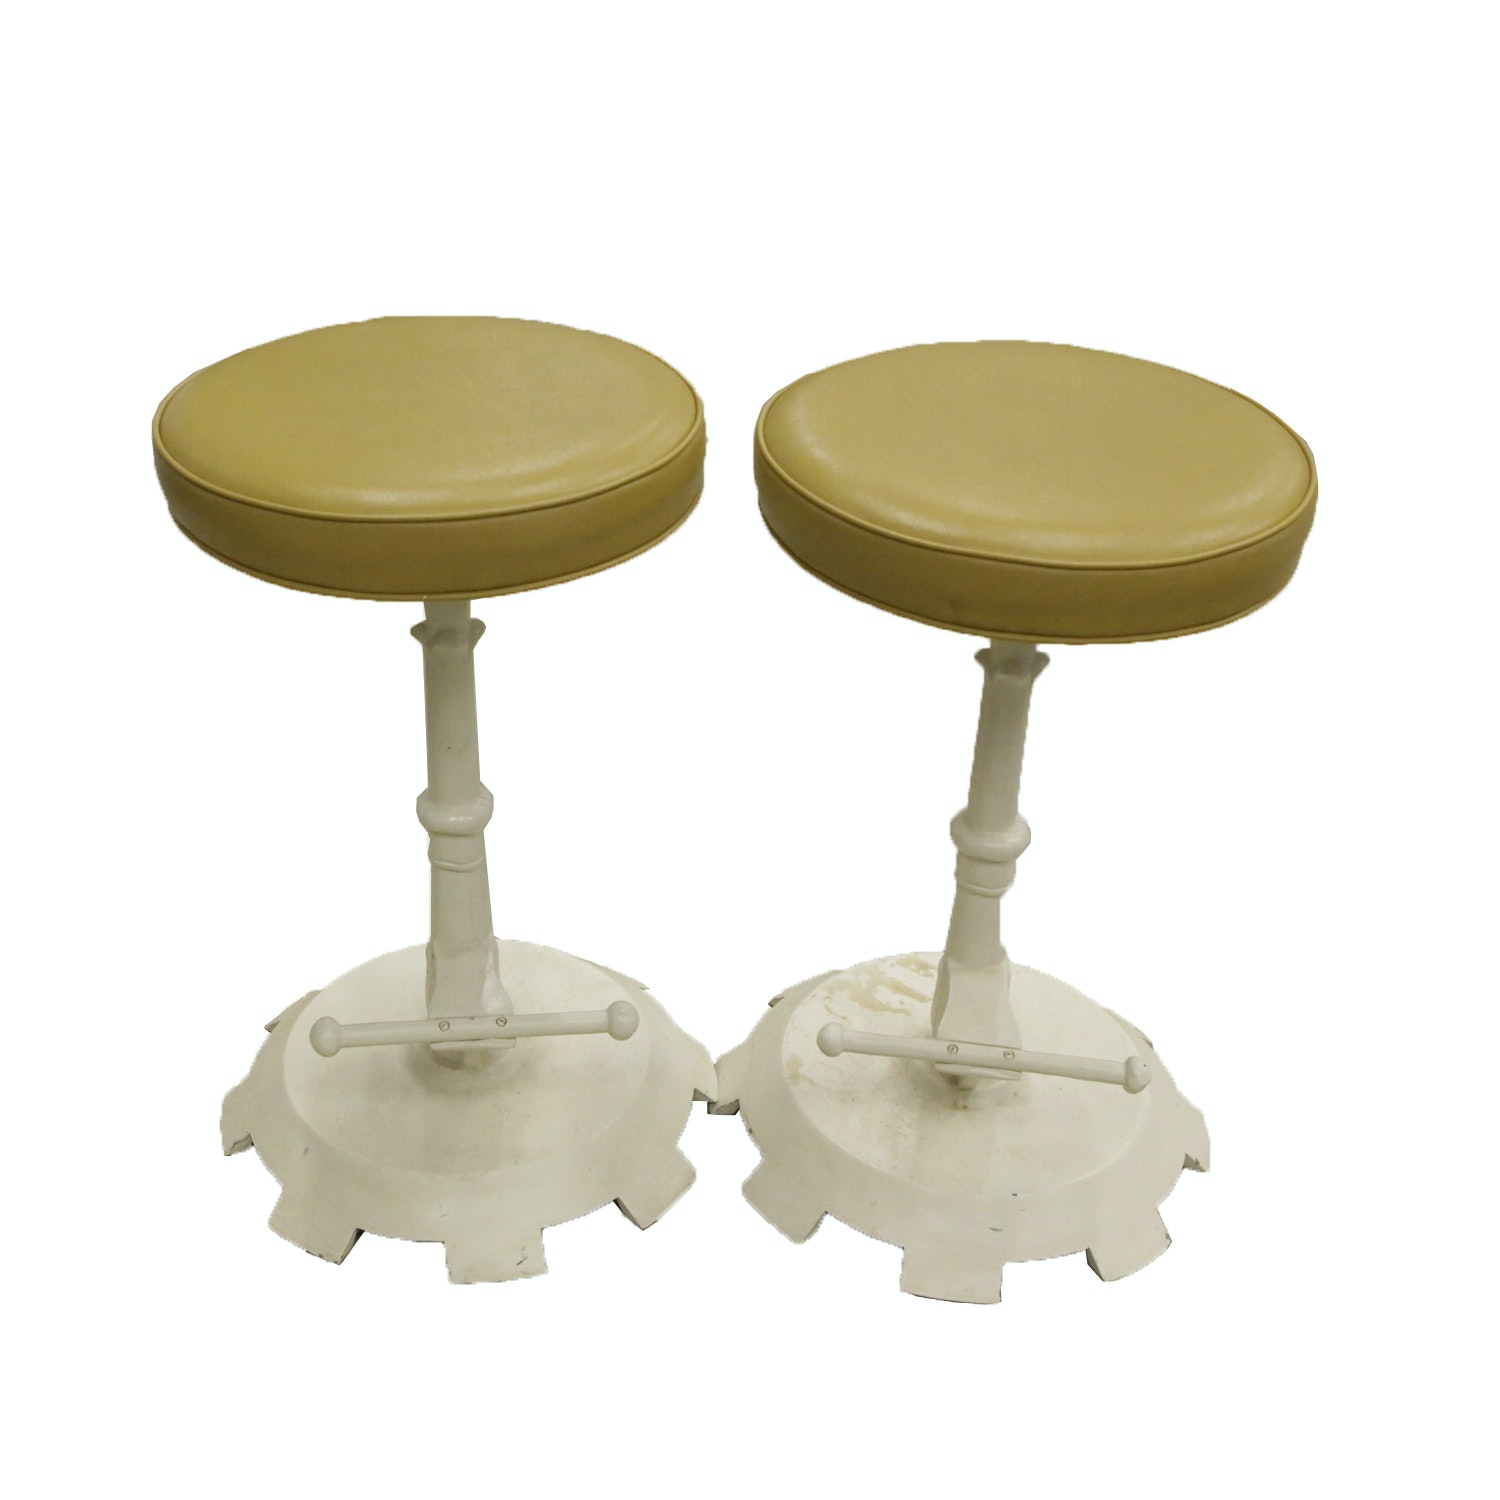 Vintage Yellow and White Swivel Counter Stools